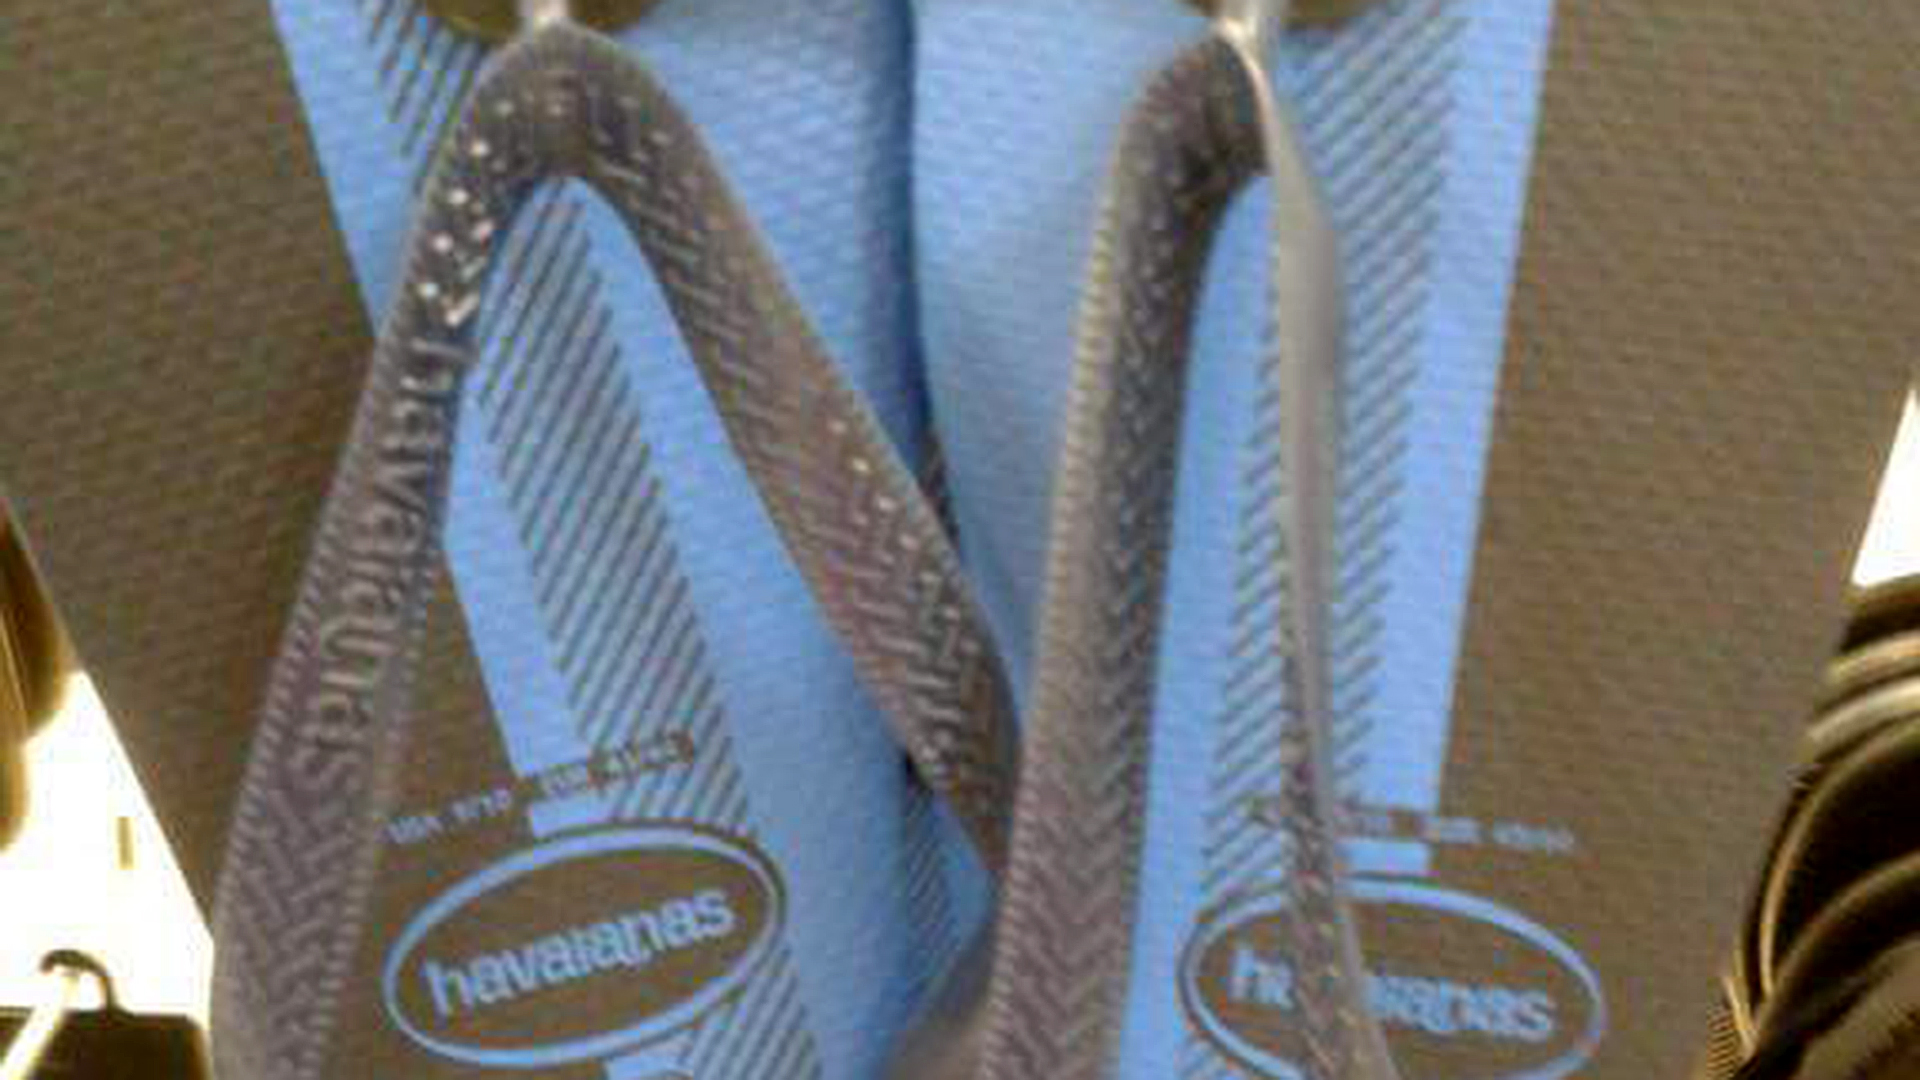 The dress debate color - The Newest Version Of The Dress What Color Are These Flip Flops Today Com